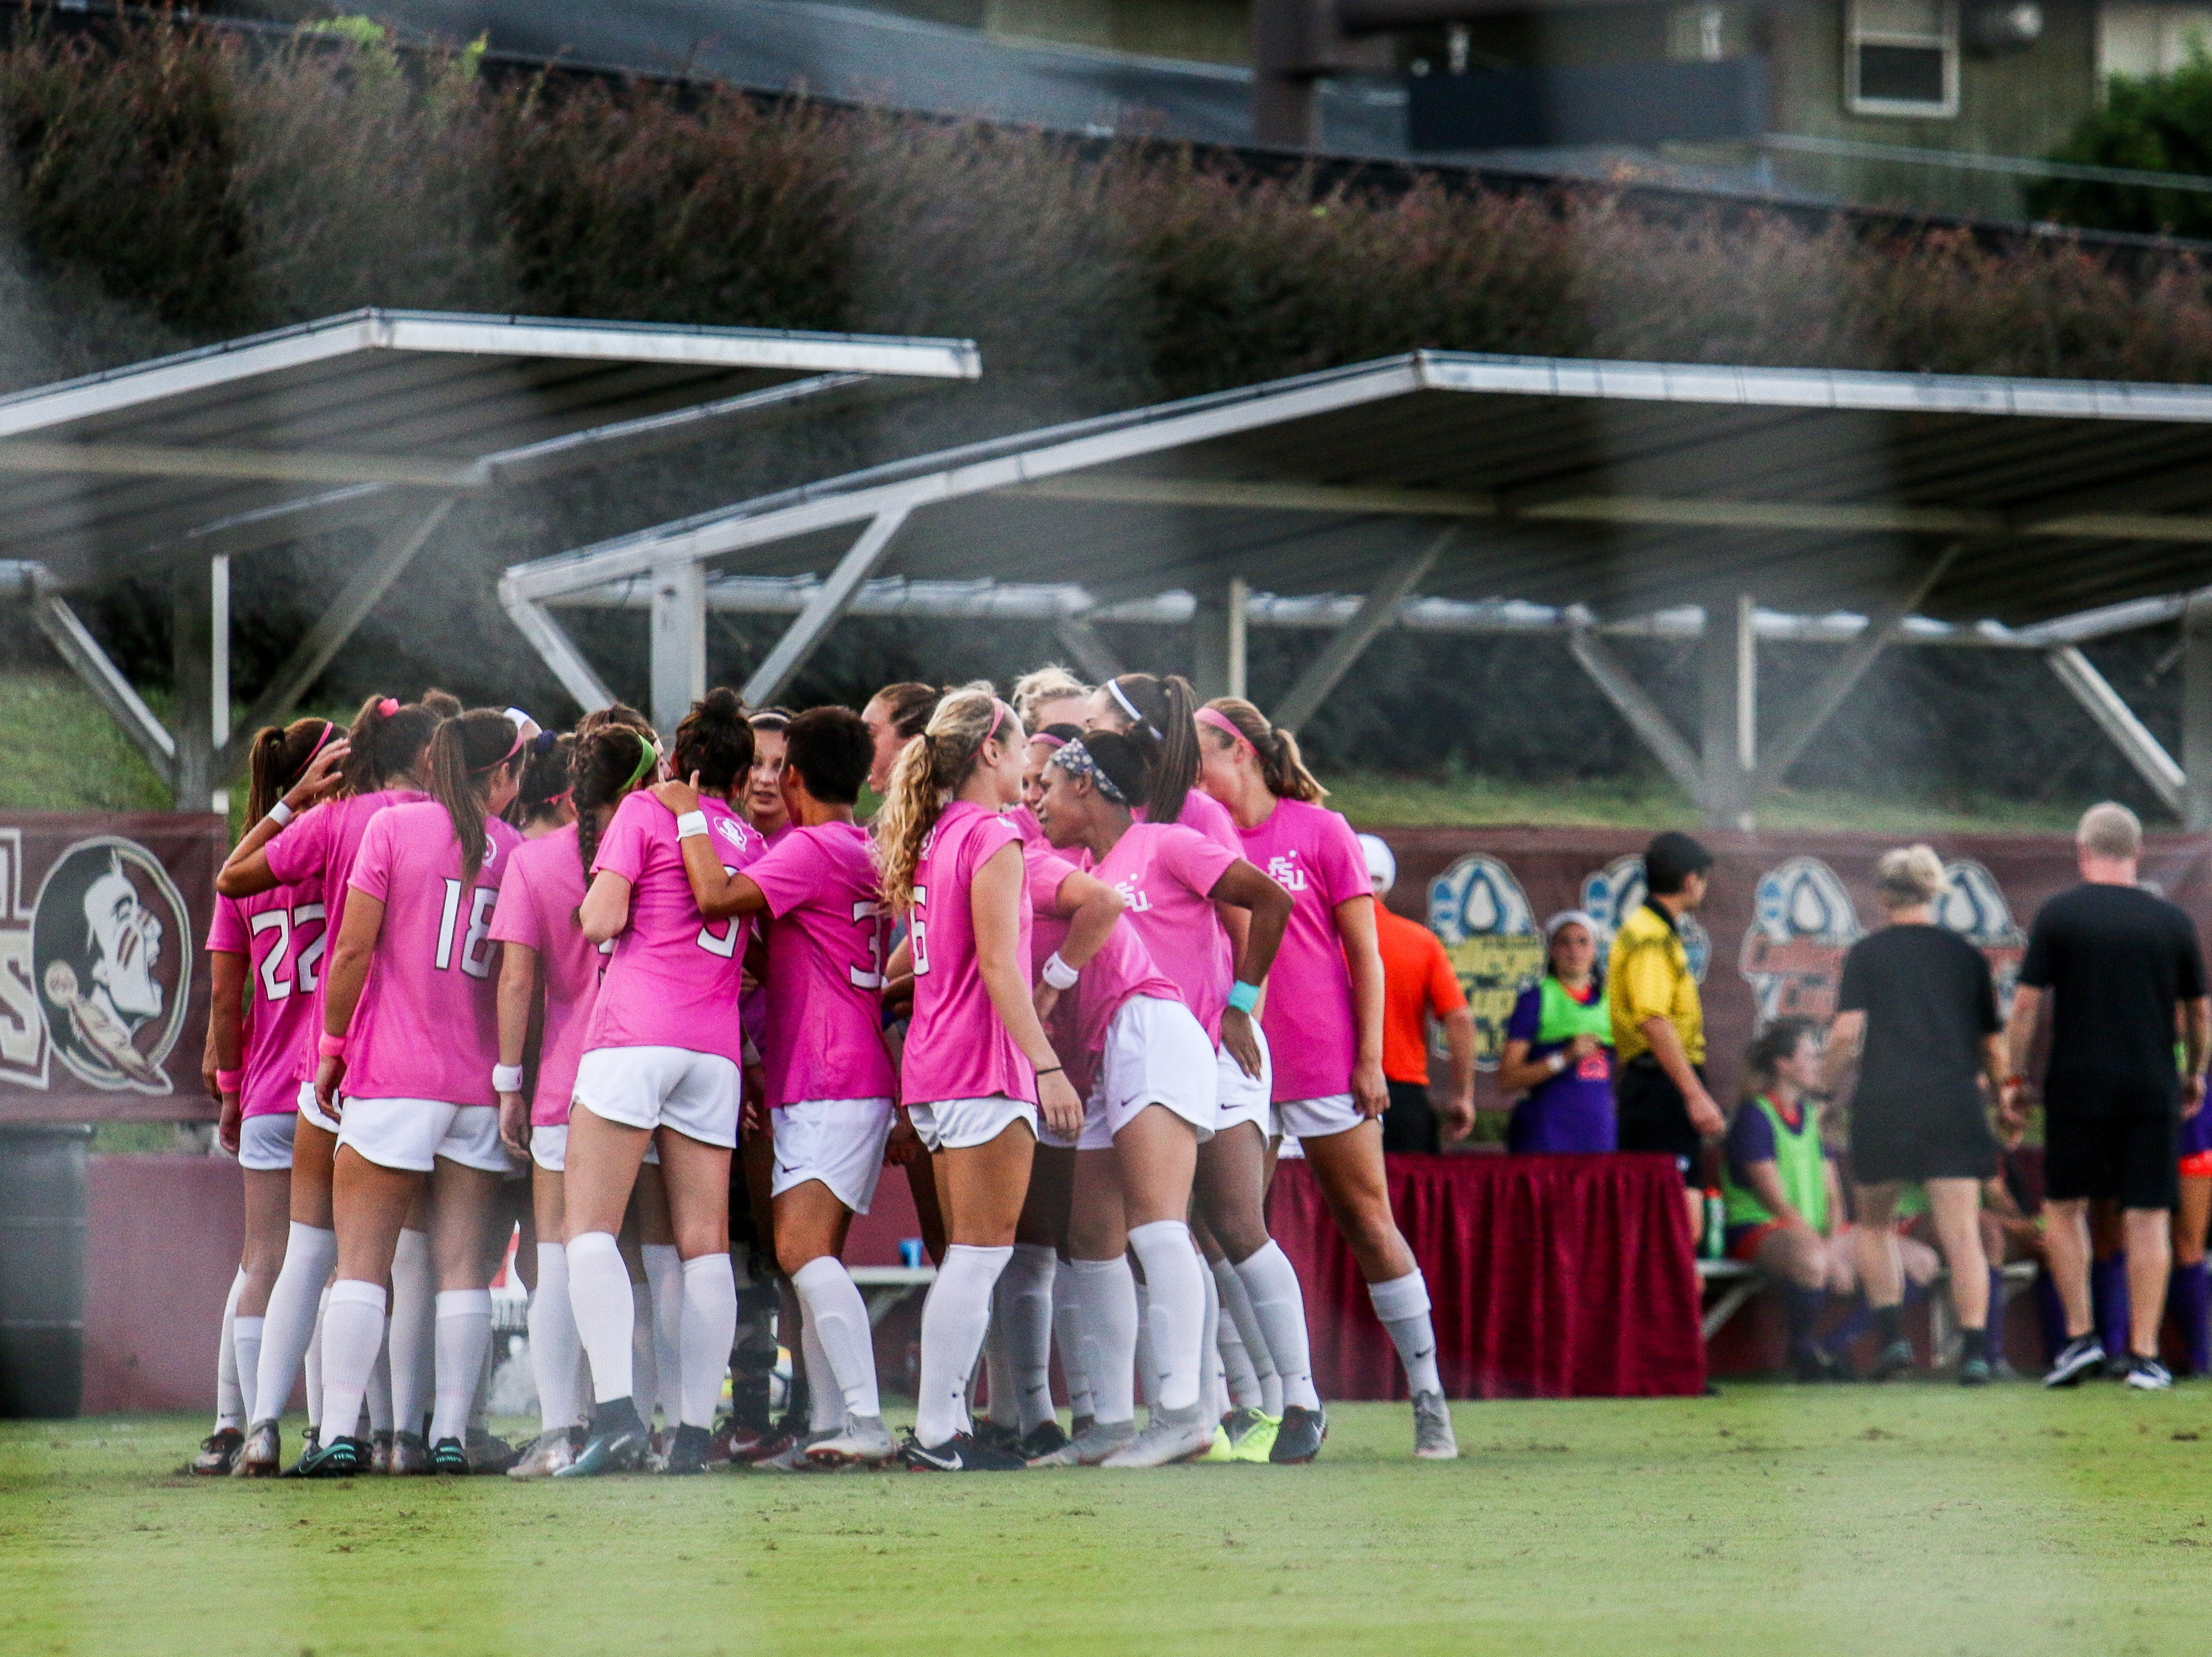 The FSU Women's Soccer team wore pink jerseys against Clemson on Thursday, October 4th in honor of Breast Cancer awareness month.